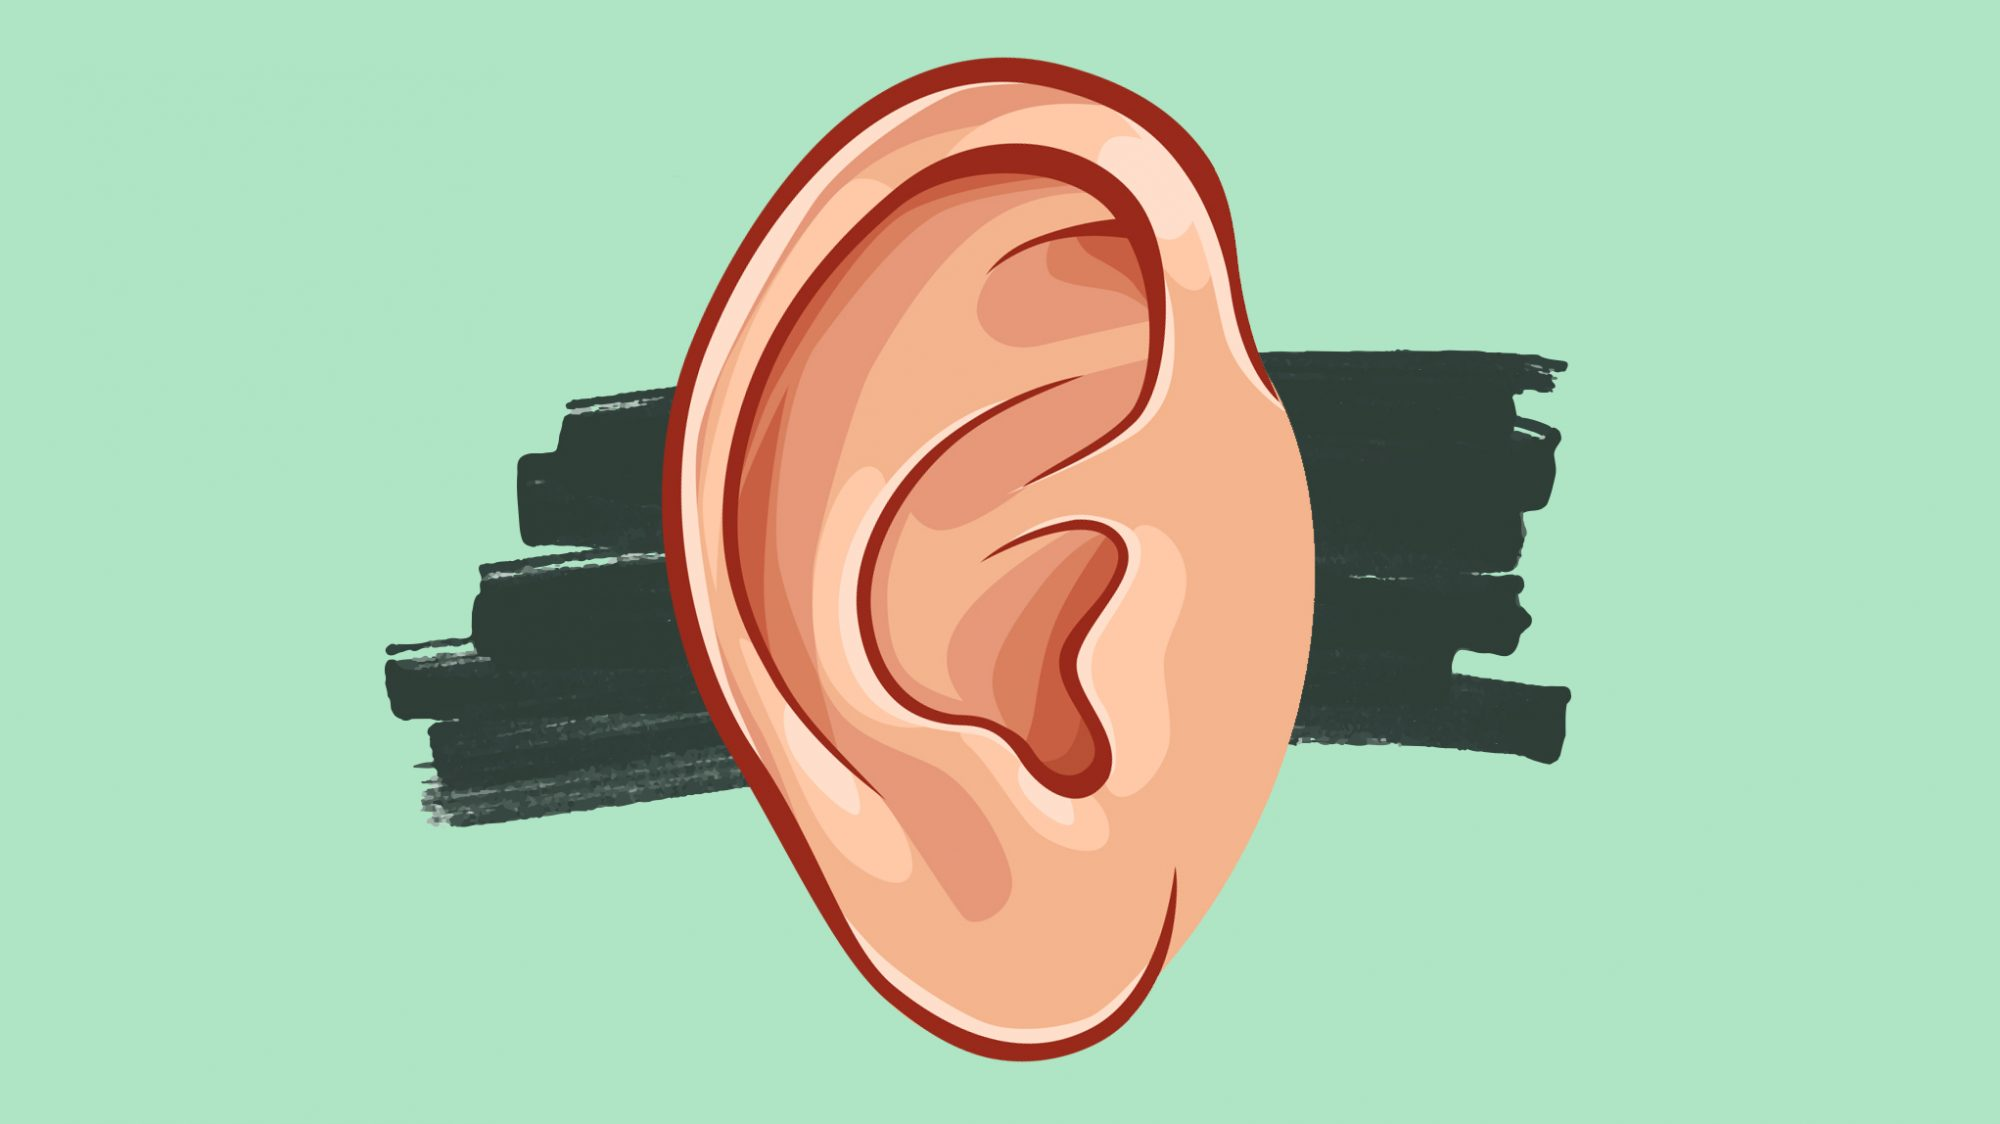 Pesky Ear Infection Symptoms You Should Never Ignore, Plus Doctor-Approved Remedies to Help Ease the Pain